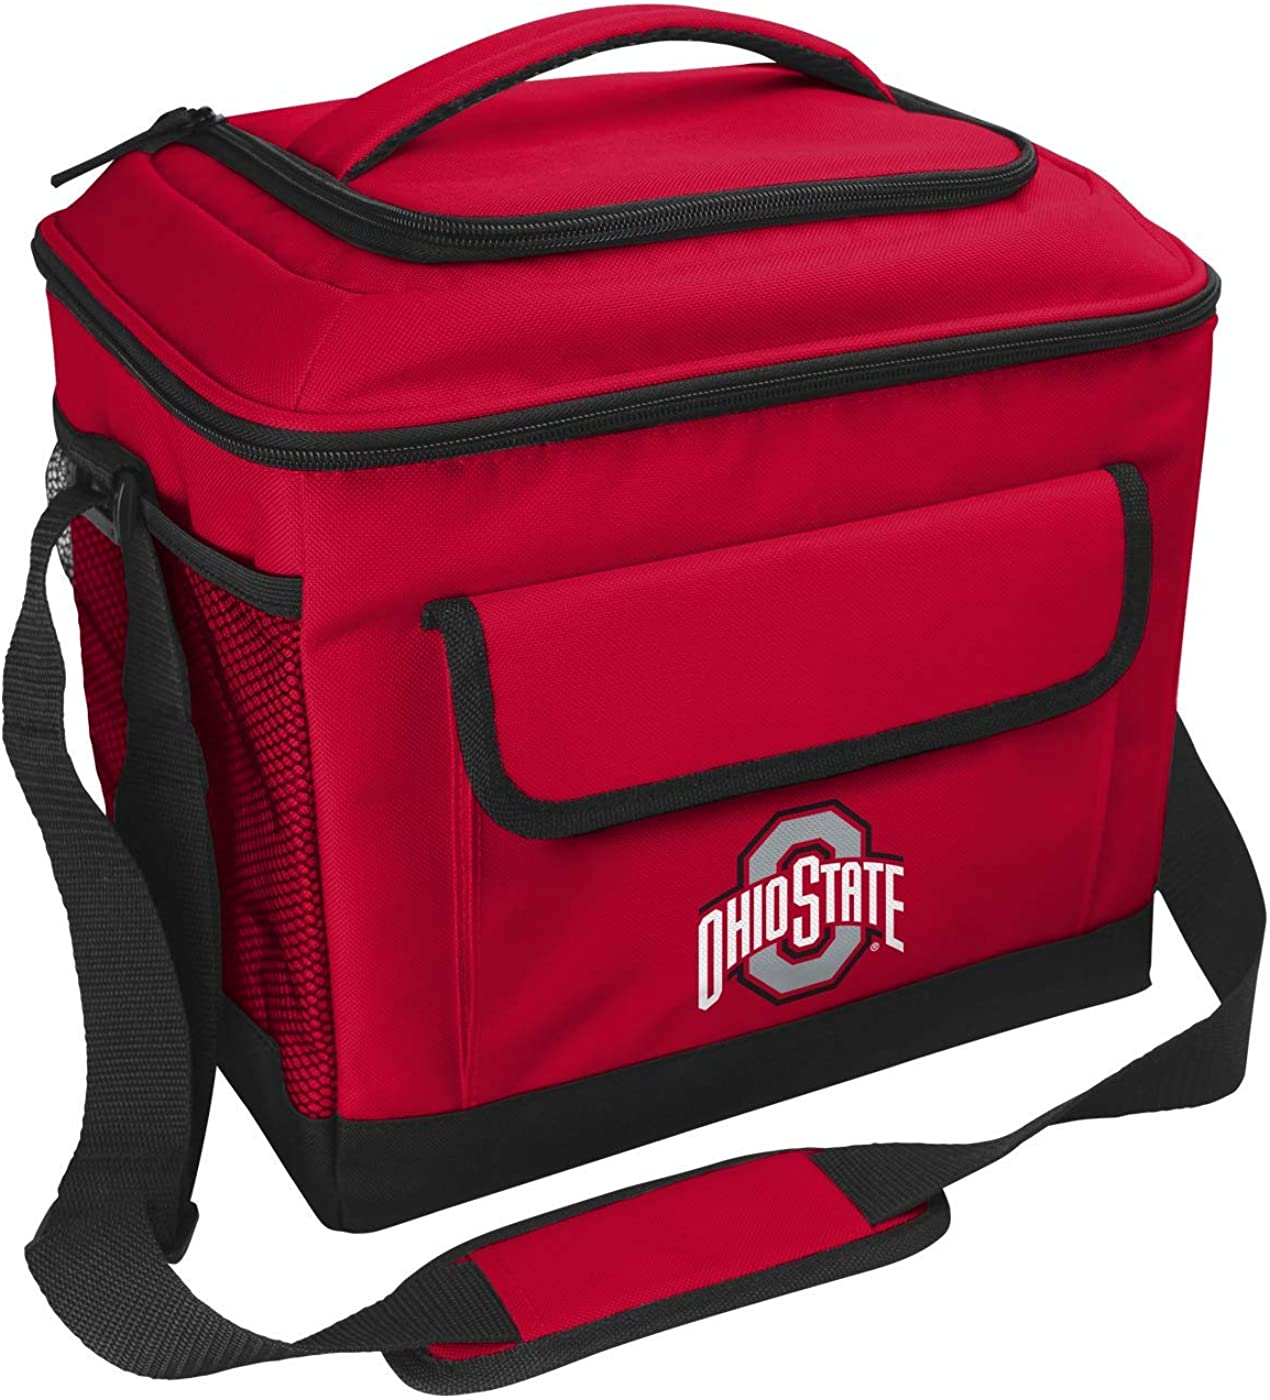 Rawlings NCAA unisex-adult Rawlings NCAA Soft-Sided Insulated Cooler, 24-Can Capacity (Multiple Team Options)